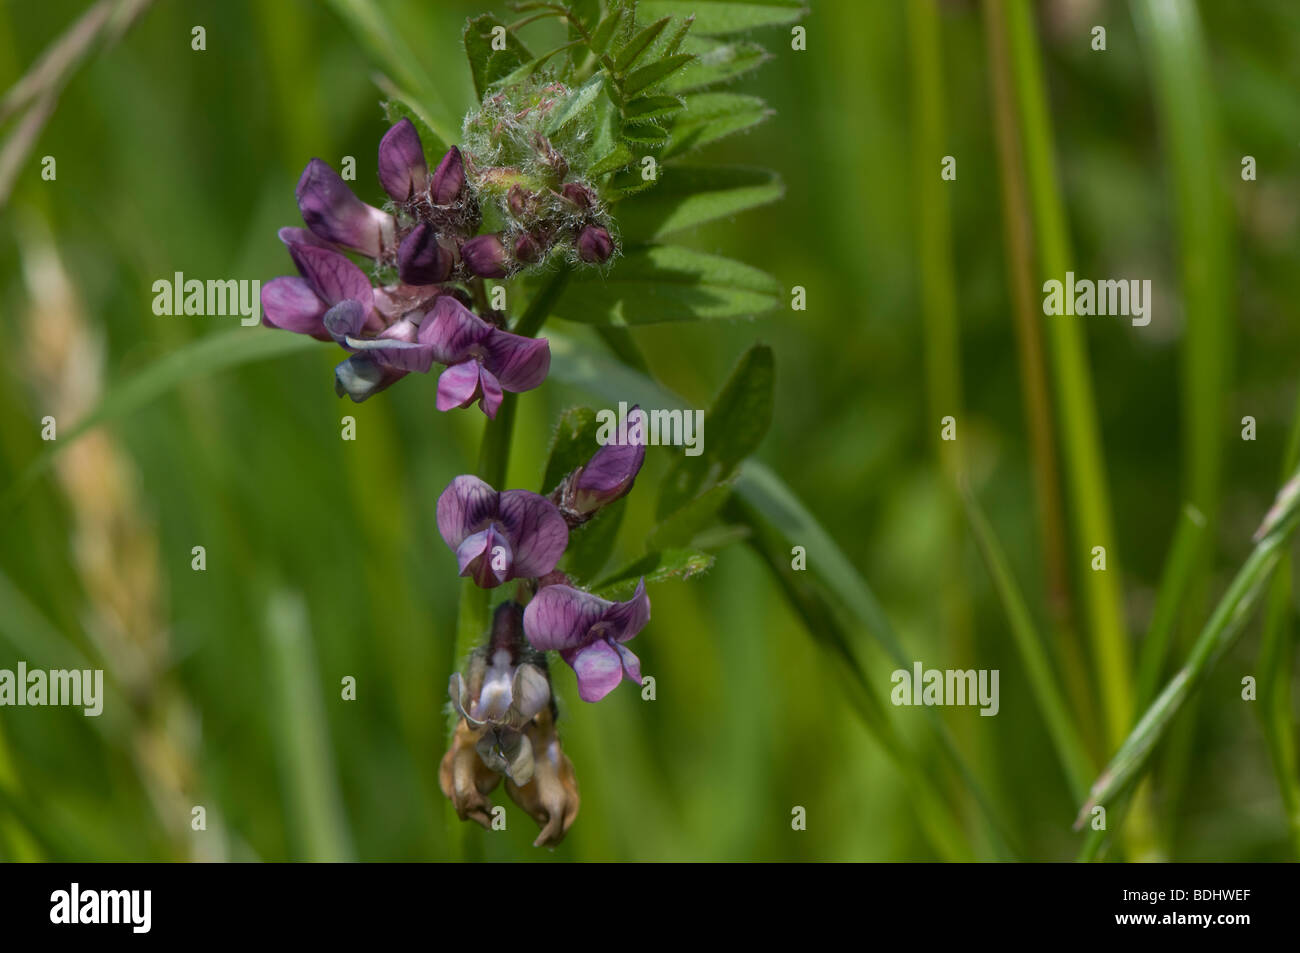 Bush vetch Vicia sepium with brown pollinated flowers - Stock Image